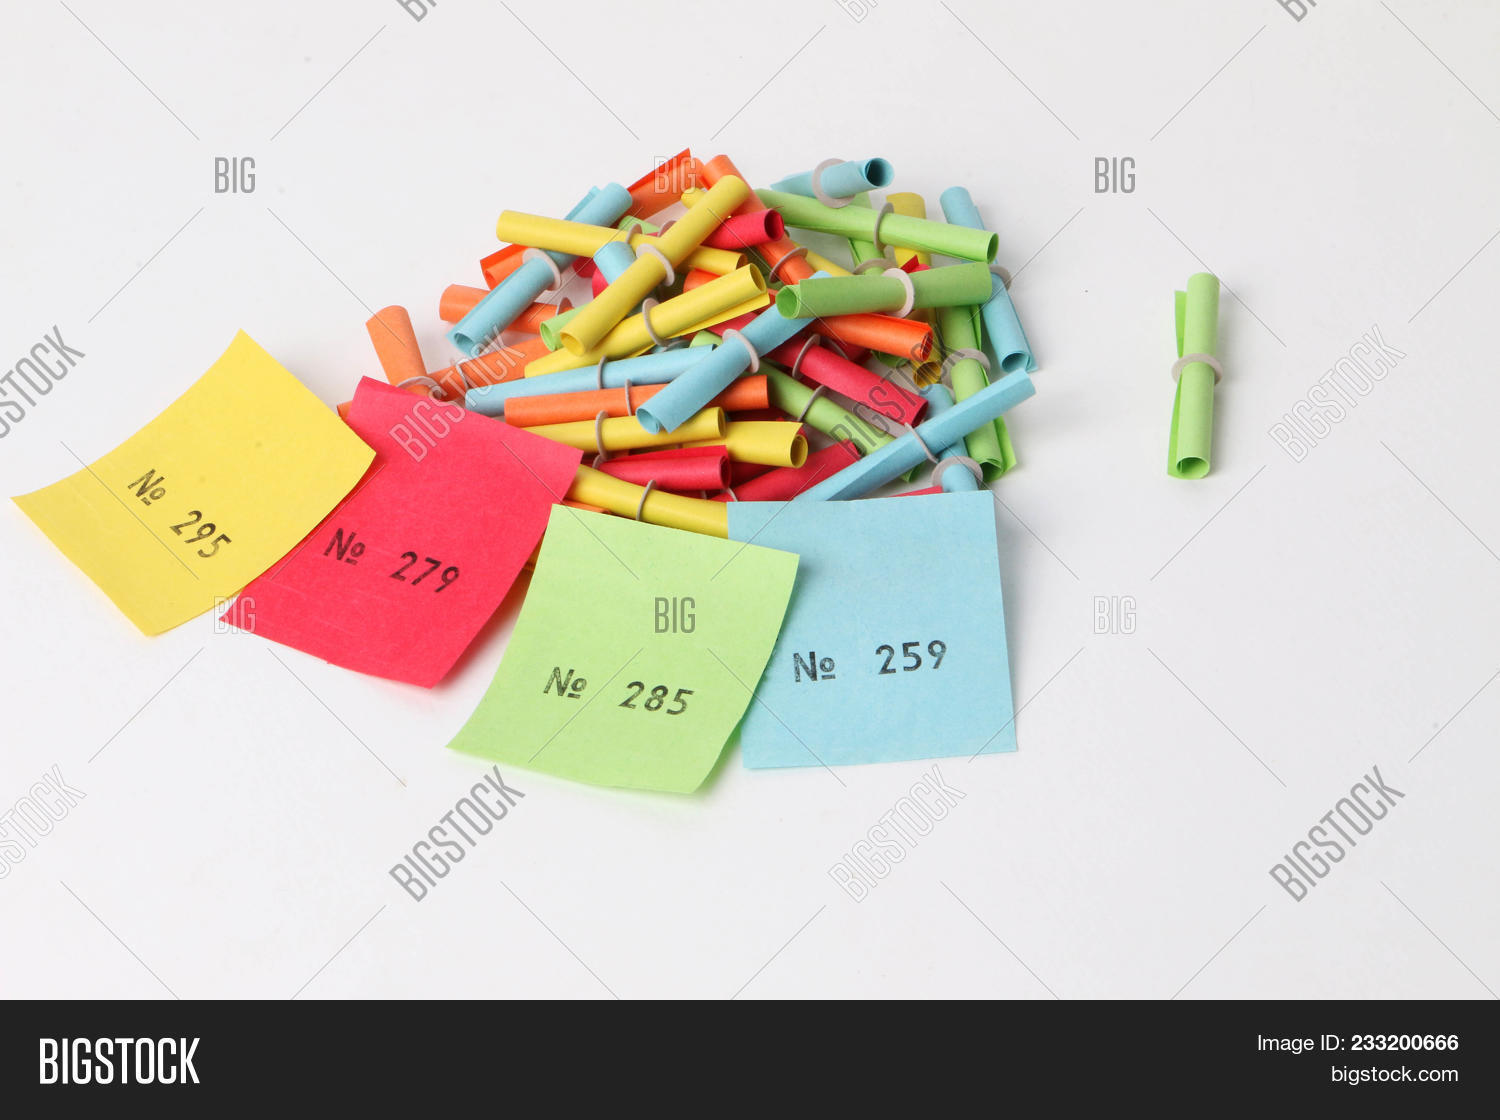 colorful tombola image photo free trial bigstock